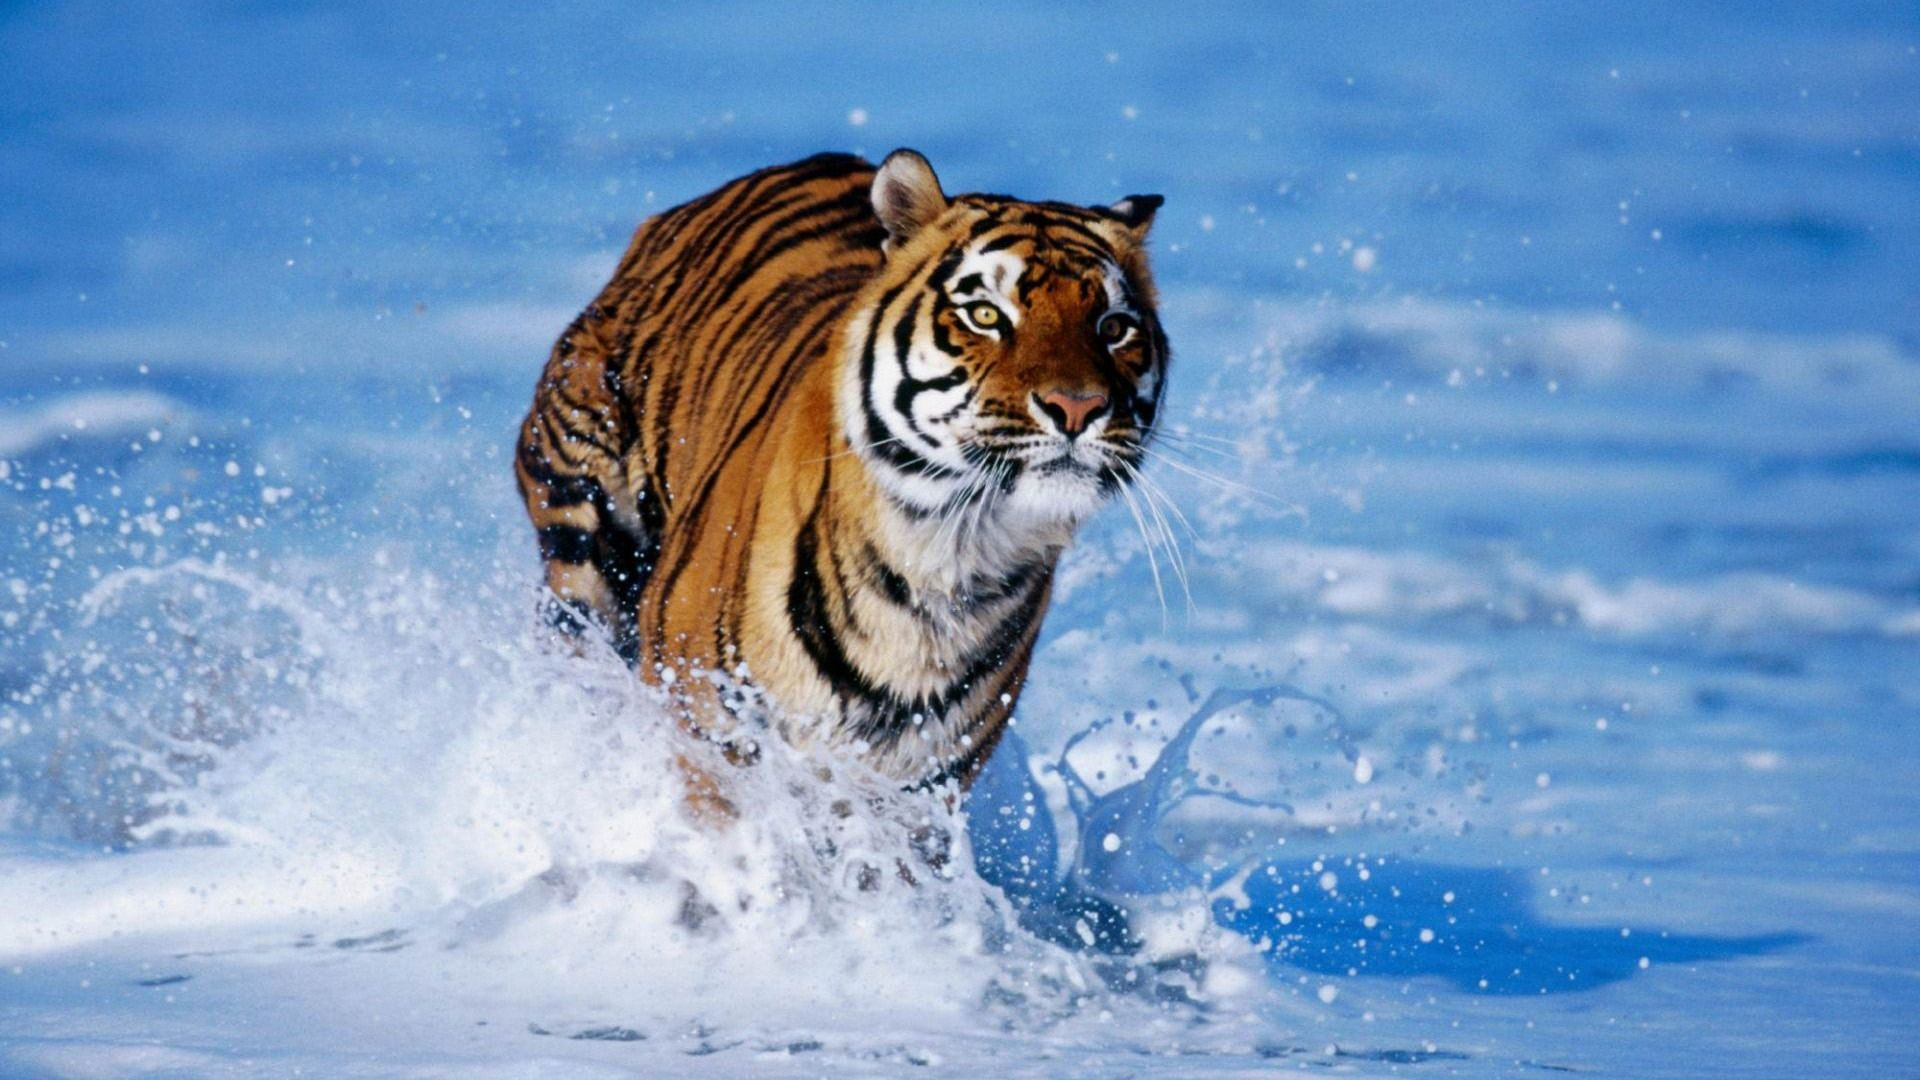 Tiger Beach Tiger In Water Pet Tiger Animals Wild